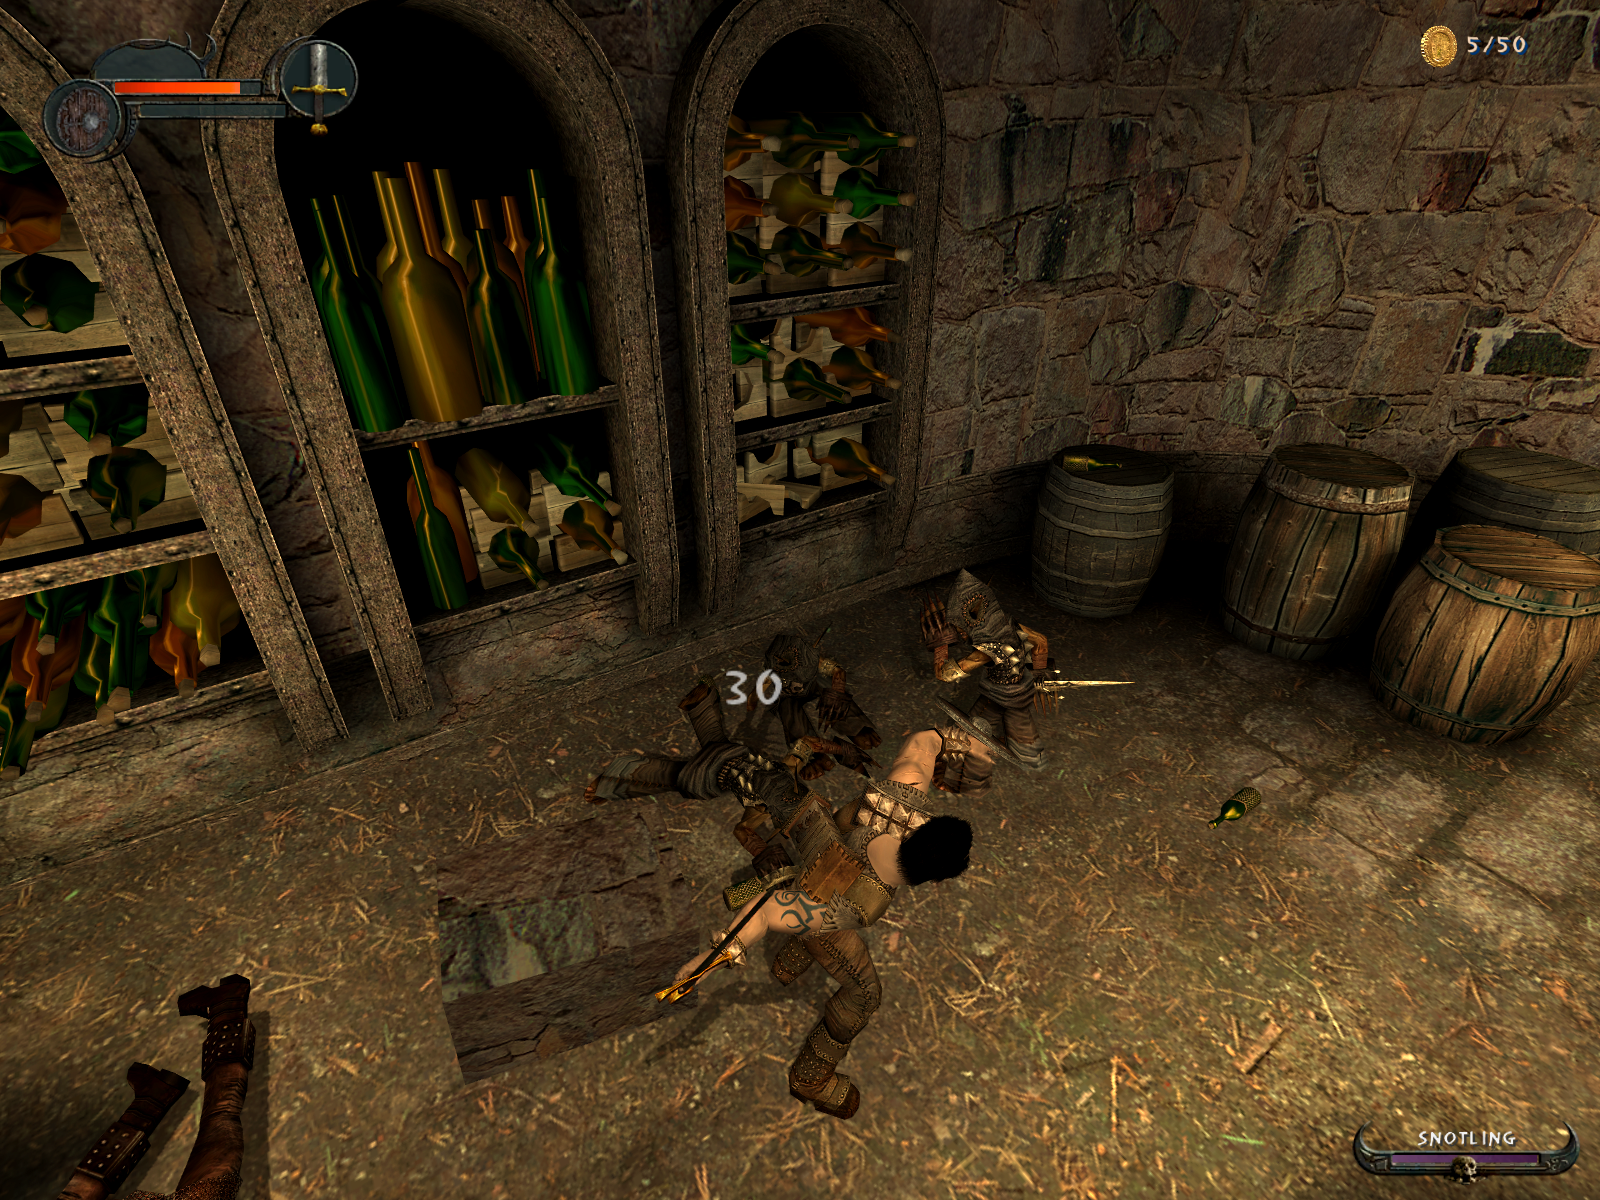 Enclave Windows Hacking and slashing at a goblin. It looks like I might've hurt his eye!